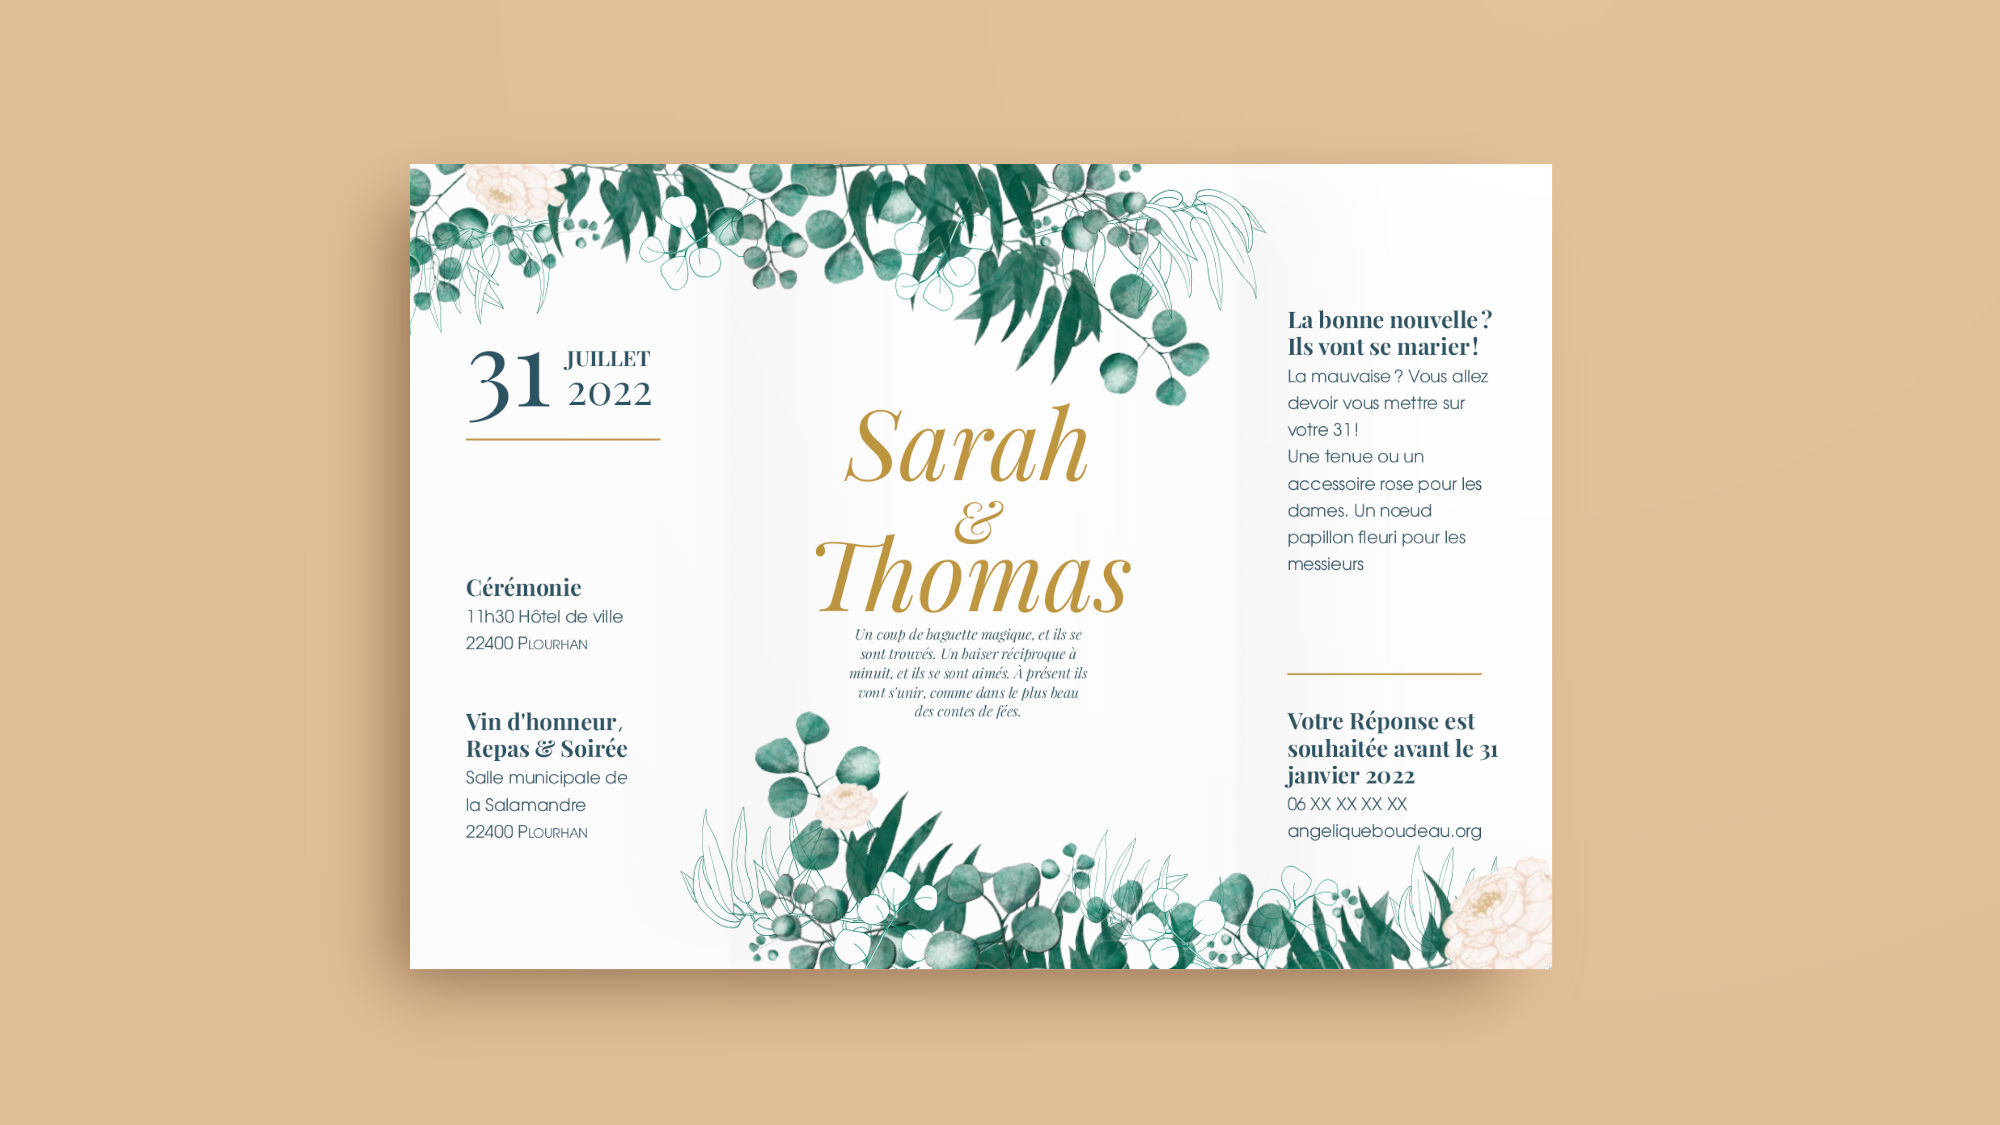 Mockup of the back of the wedding invitation on a colored background. Includes coloured illustrations of eucalyptus and peonies.